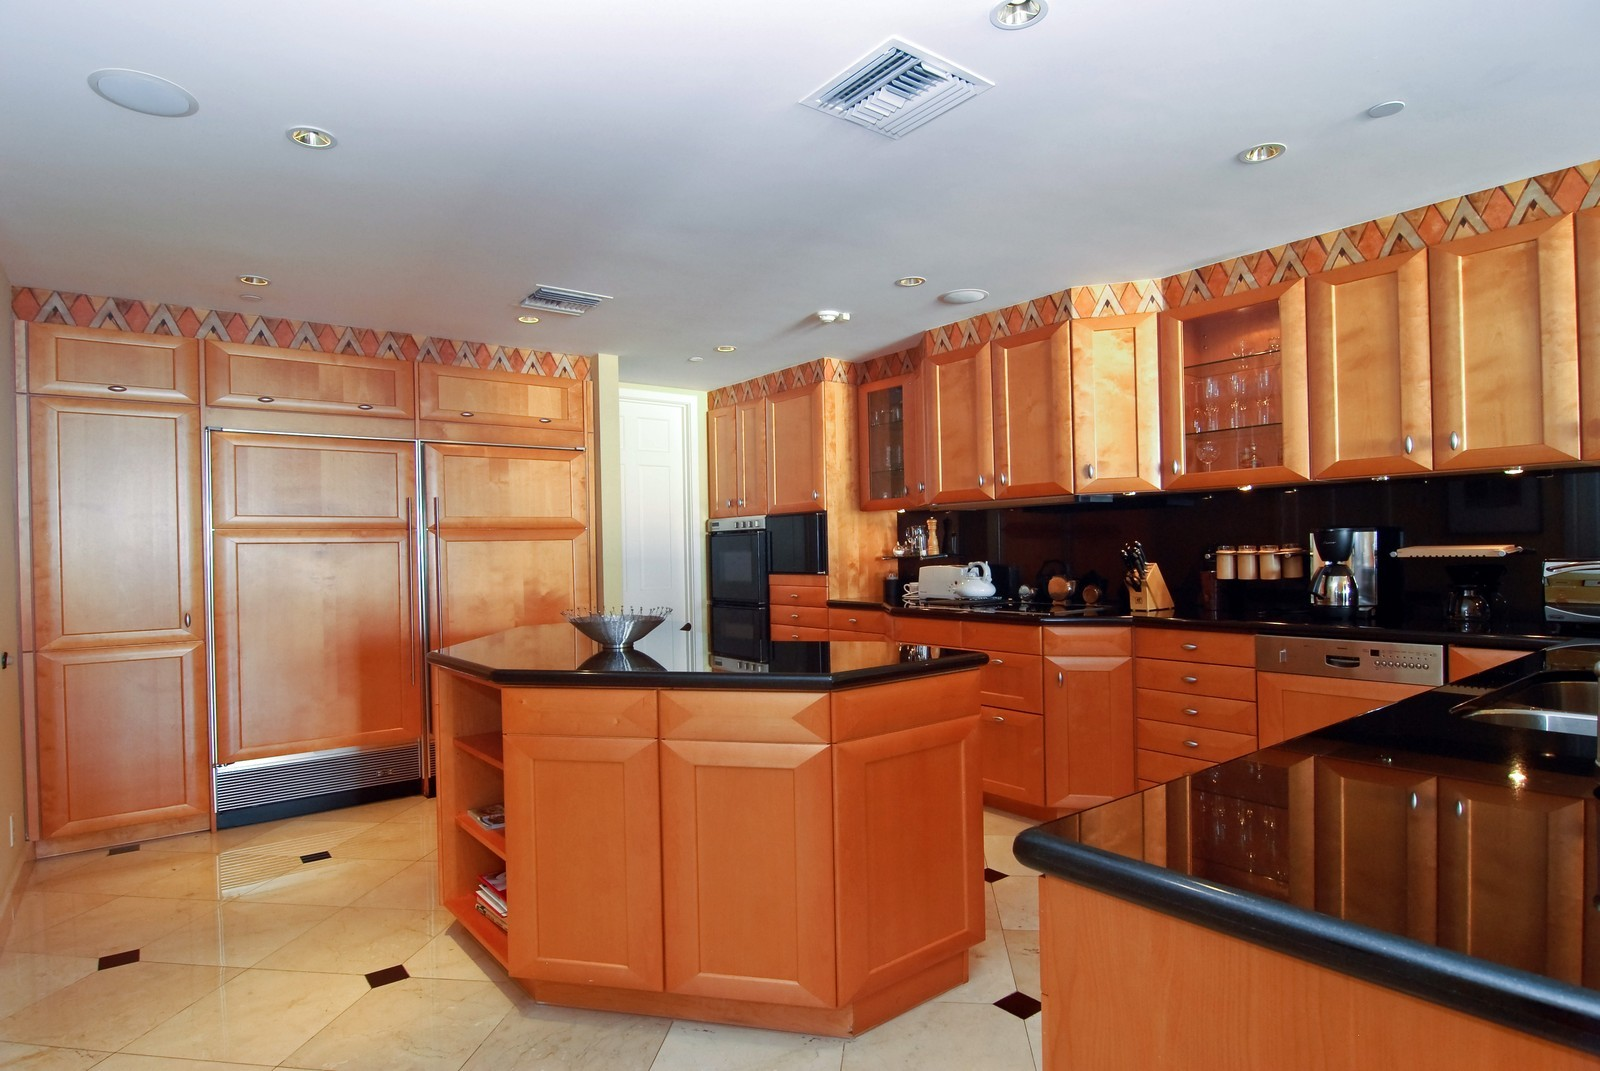 Real Estate Photography - 5294 Fisher Island Dr, Fisher Island, FL, 33109 - Kitchen